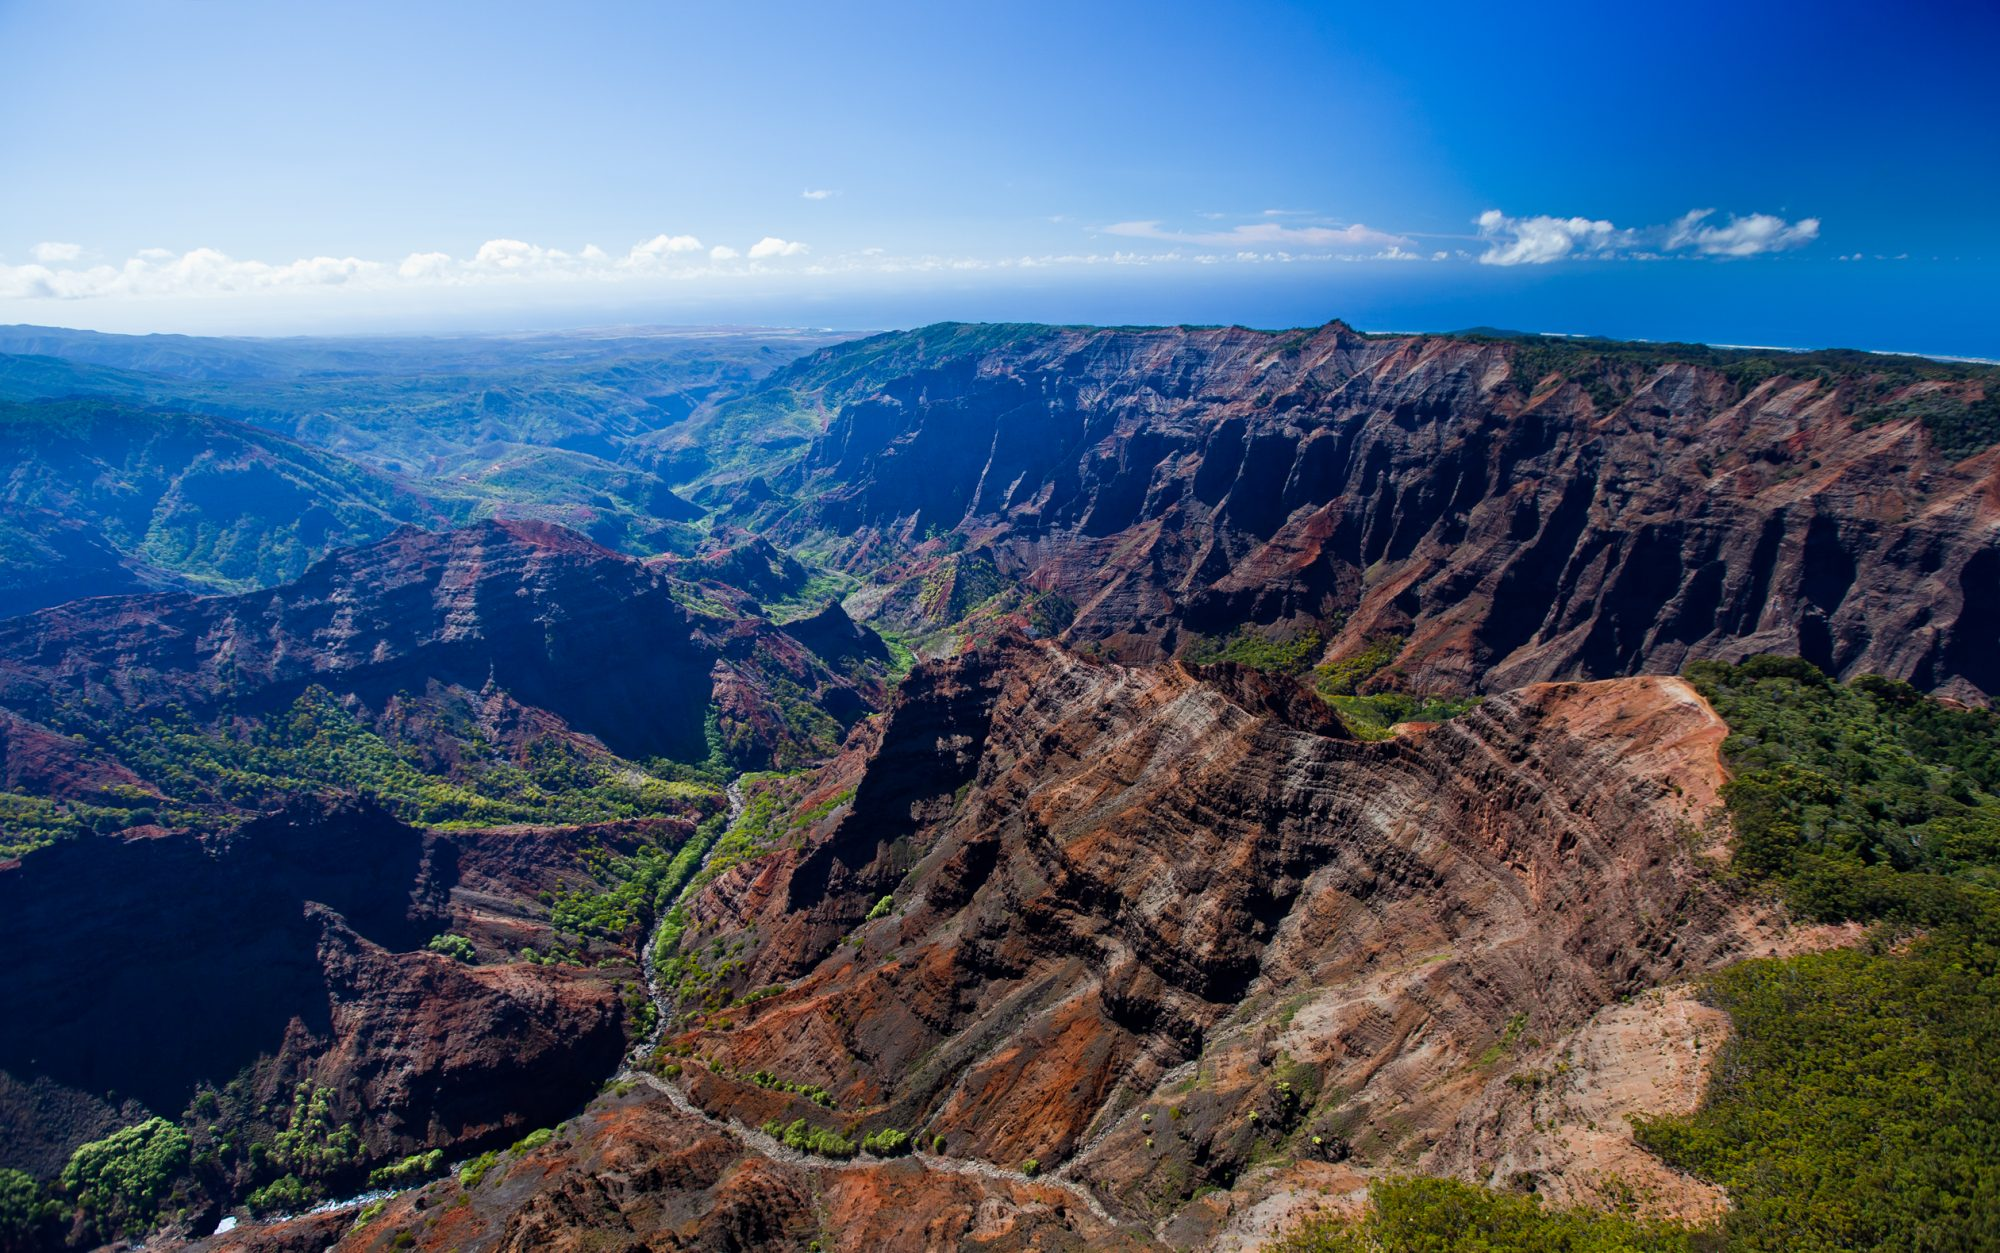 honeymooners guide hawaii waimea canyon tor johnson